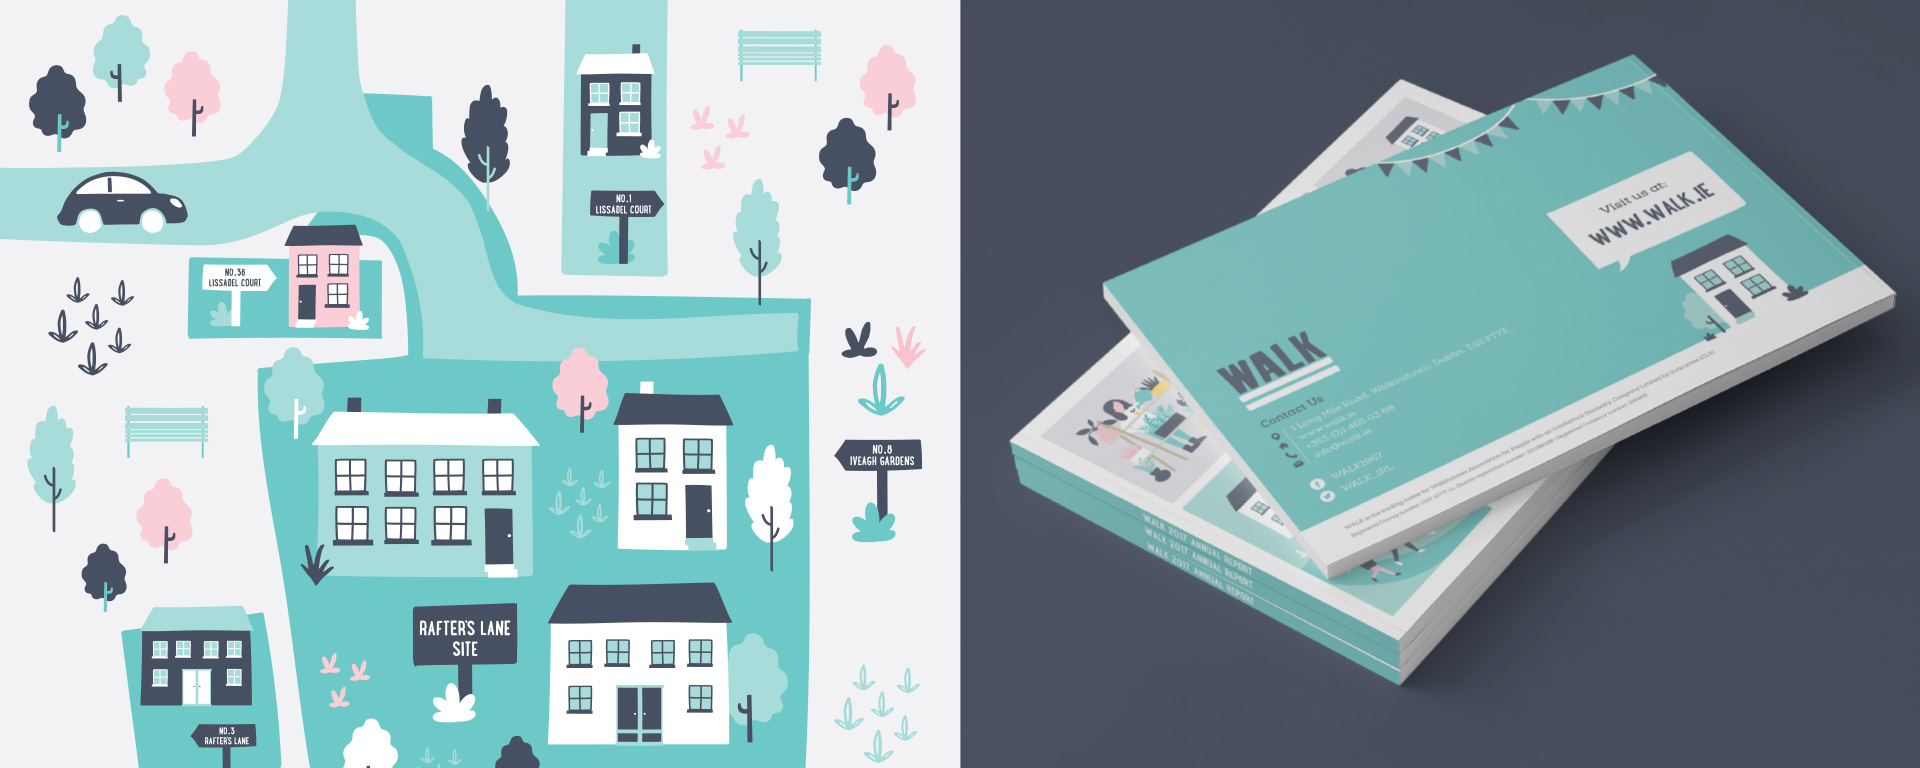 Illustrations and photographs of WALK annual report by Sweet design studio.